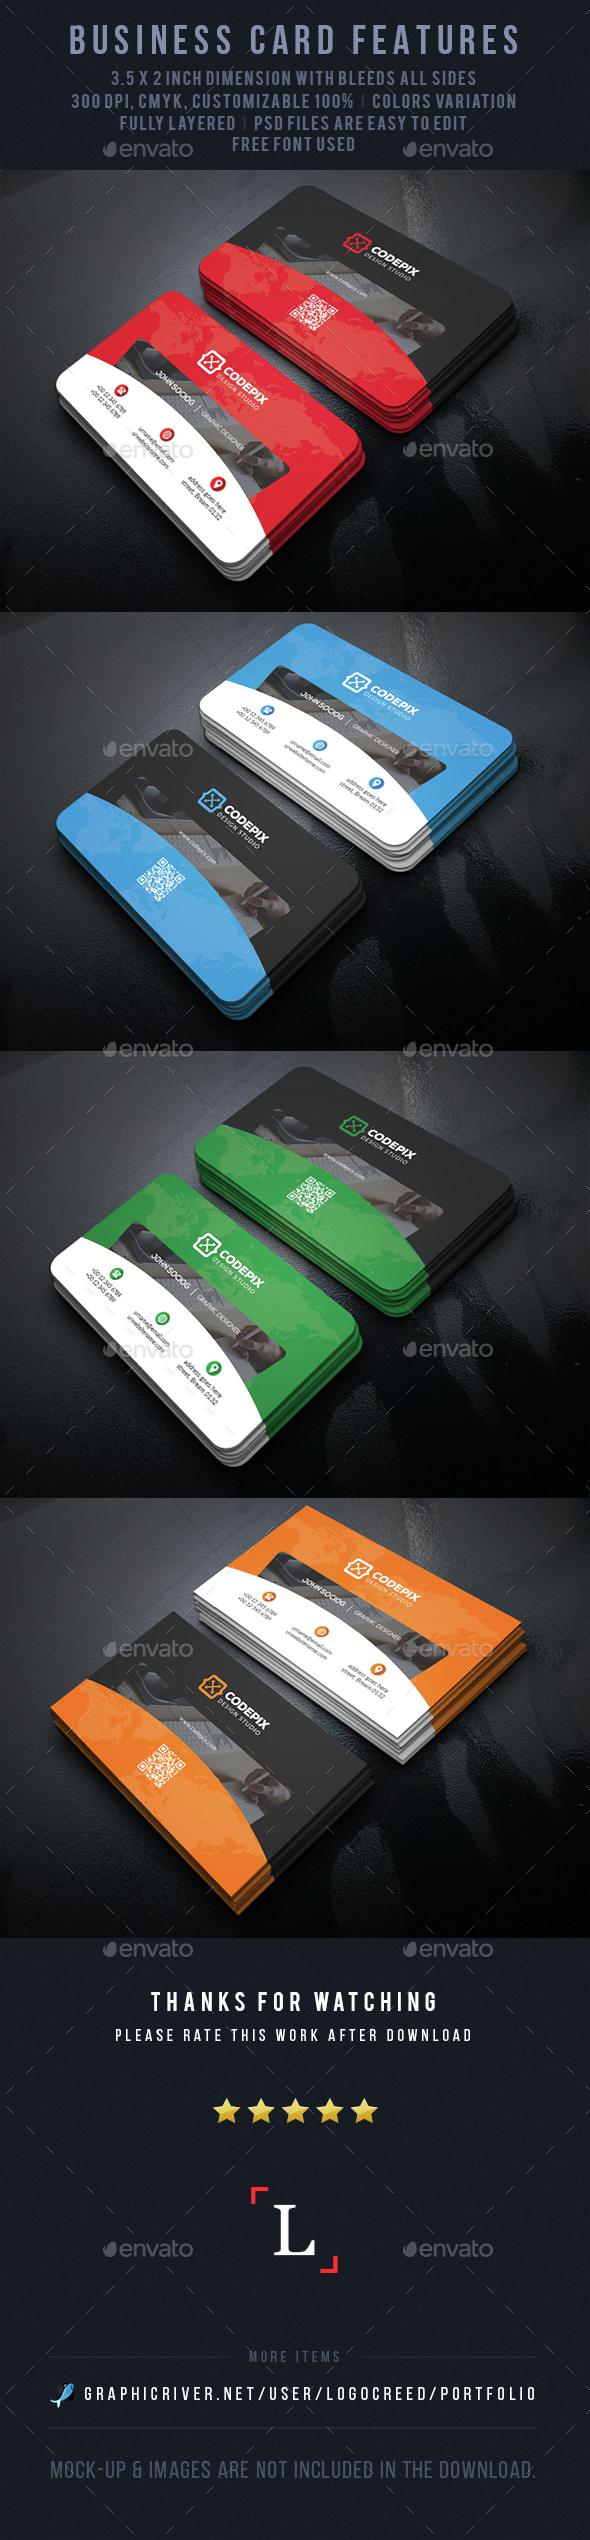 Shade Business Card - Business Cards Print Templates